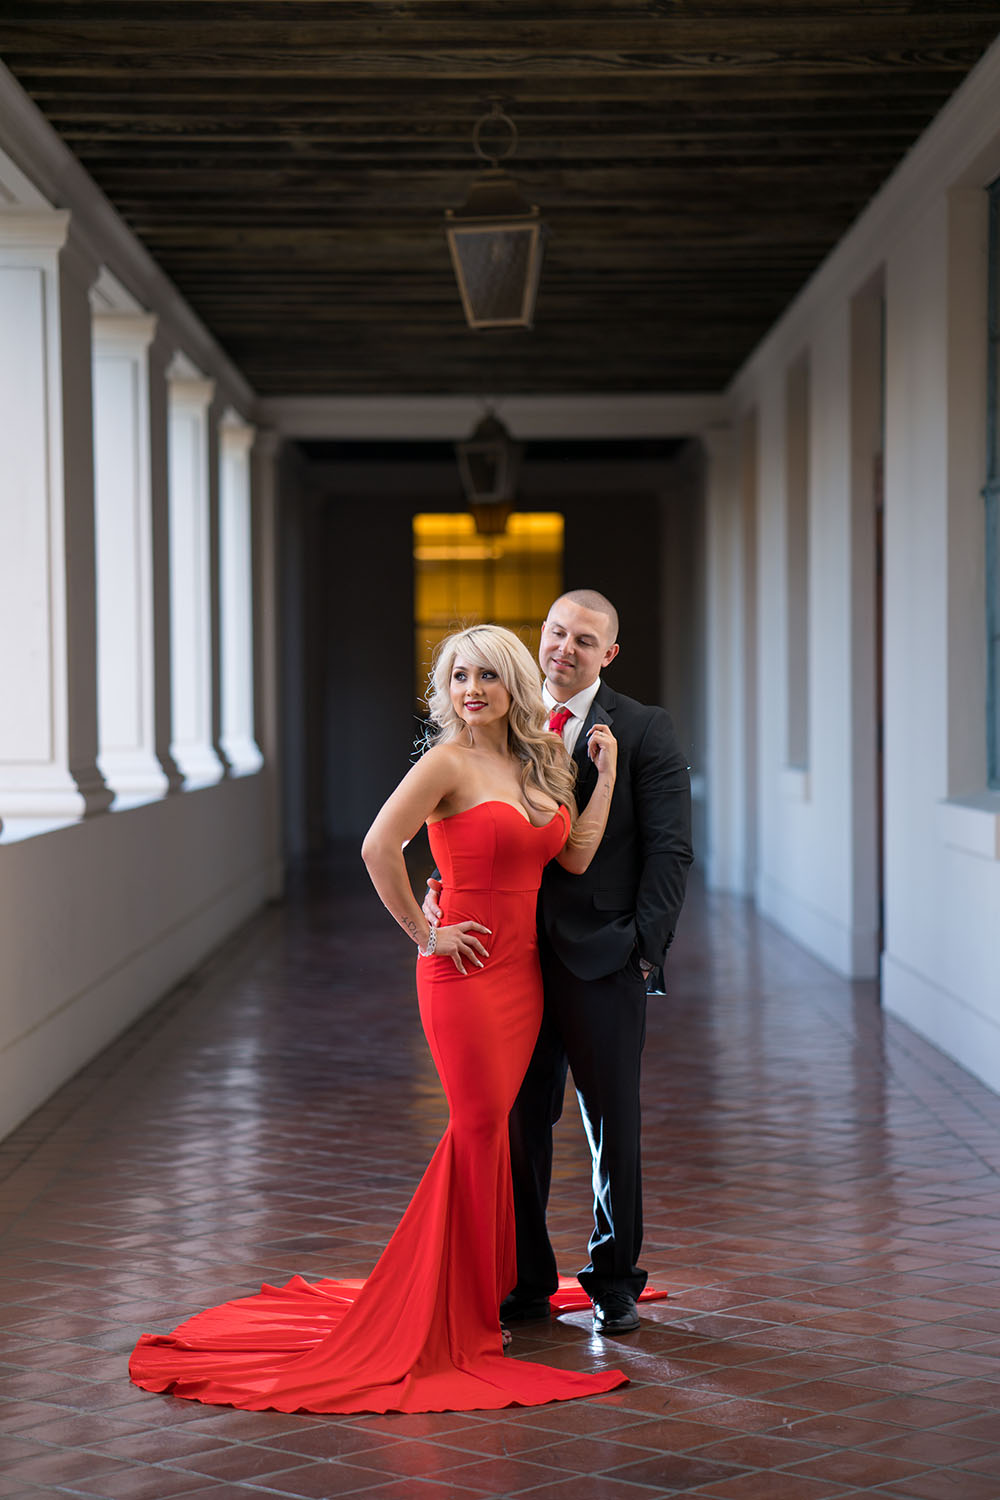 What do you notice? The red dress, right? That's because of the engagement photography.